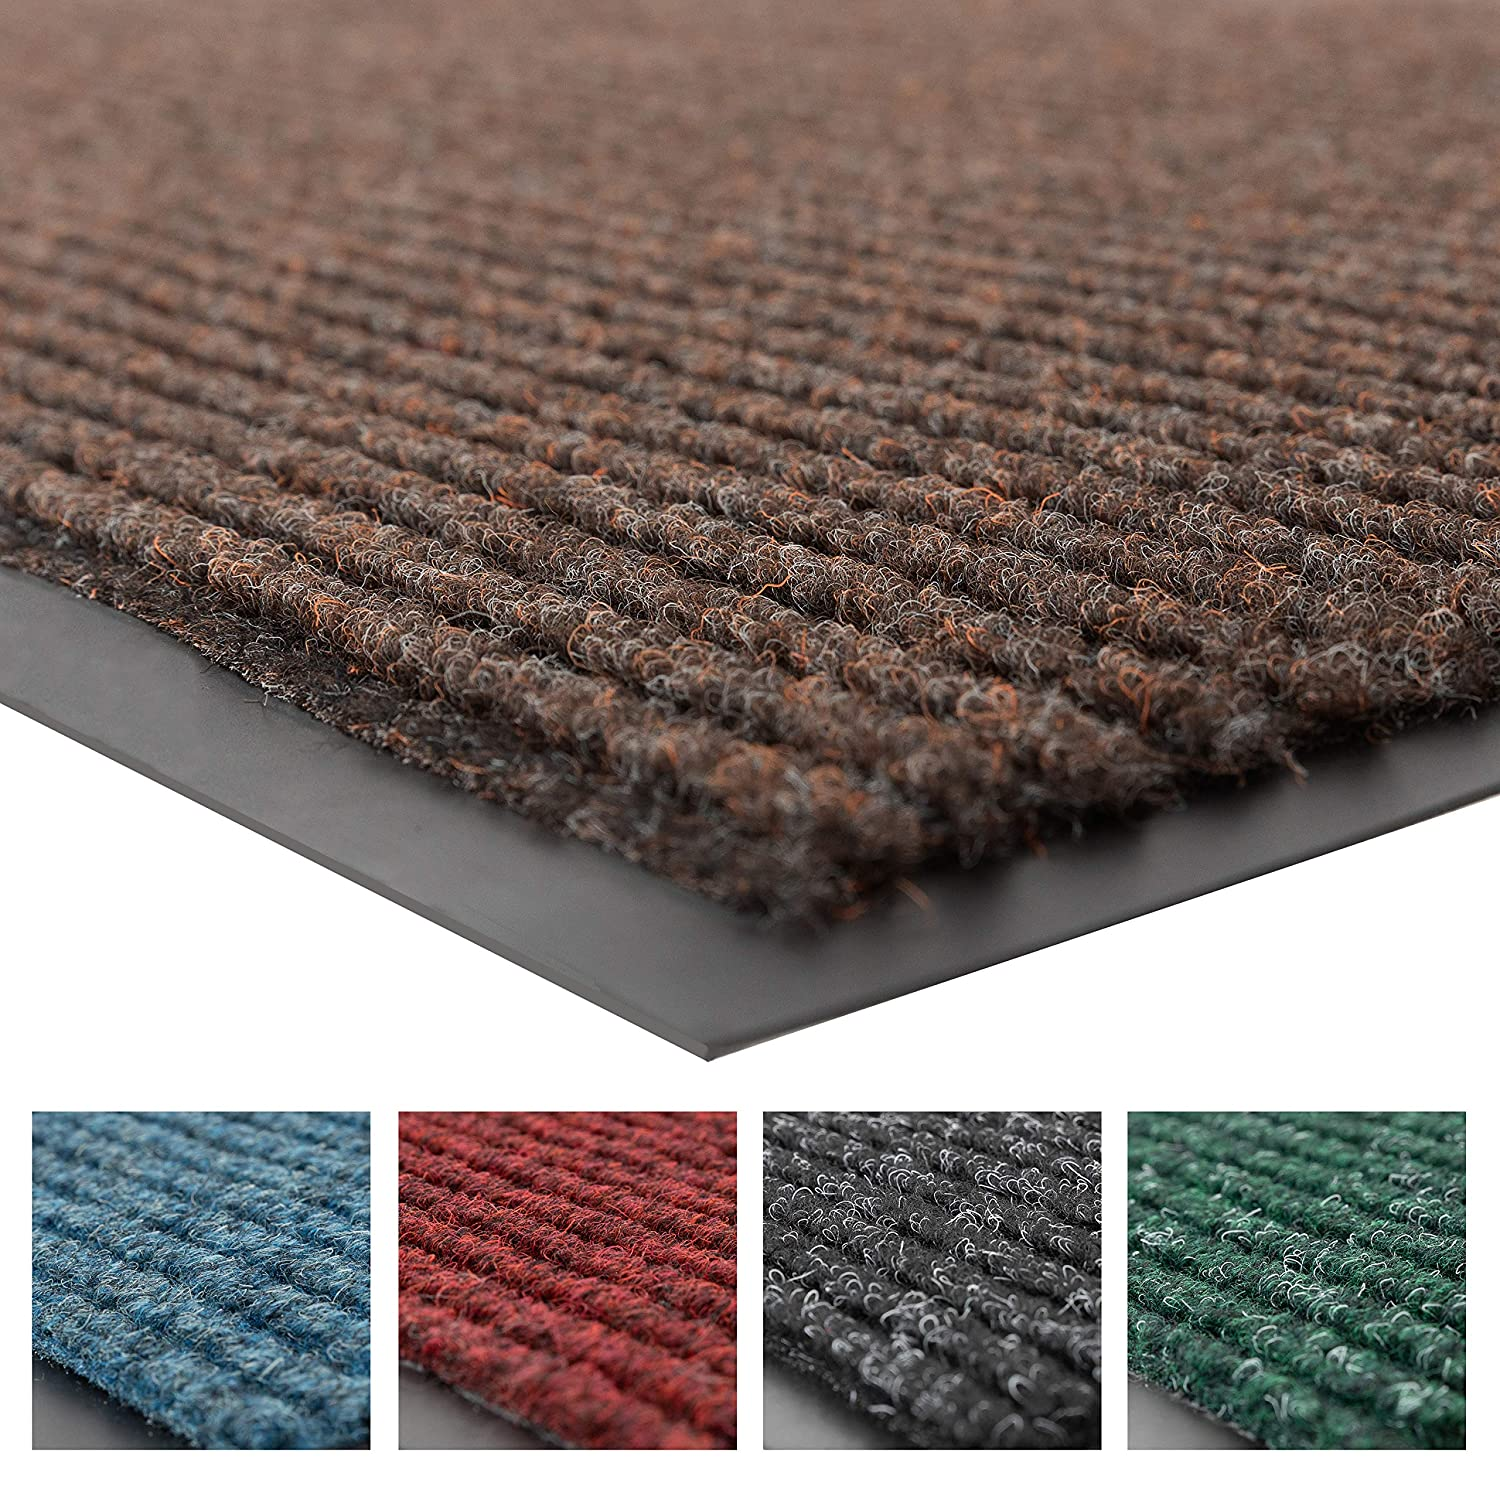 Notrax 109 Brush Step Entrance Mat, for Home or Office, 3' X 4' Brown